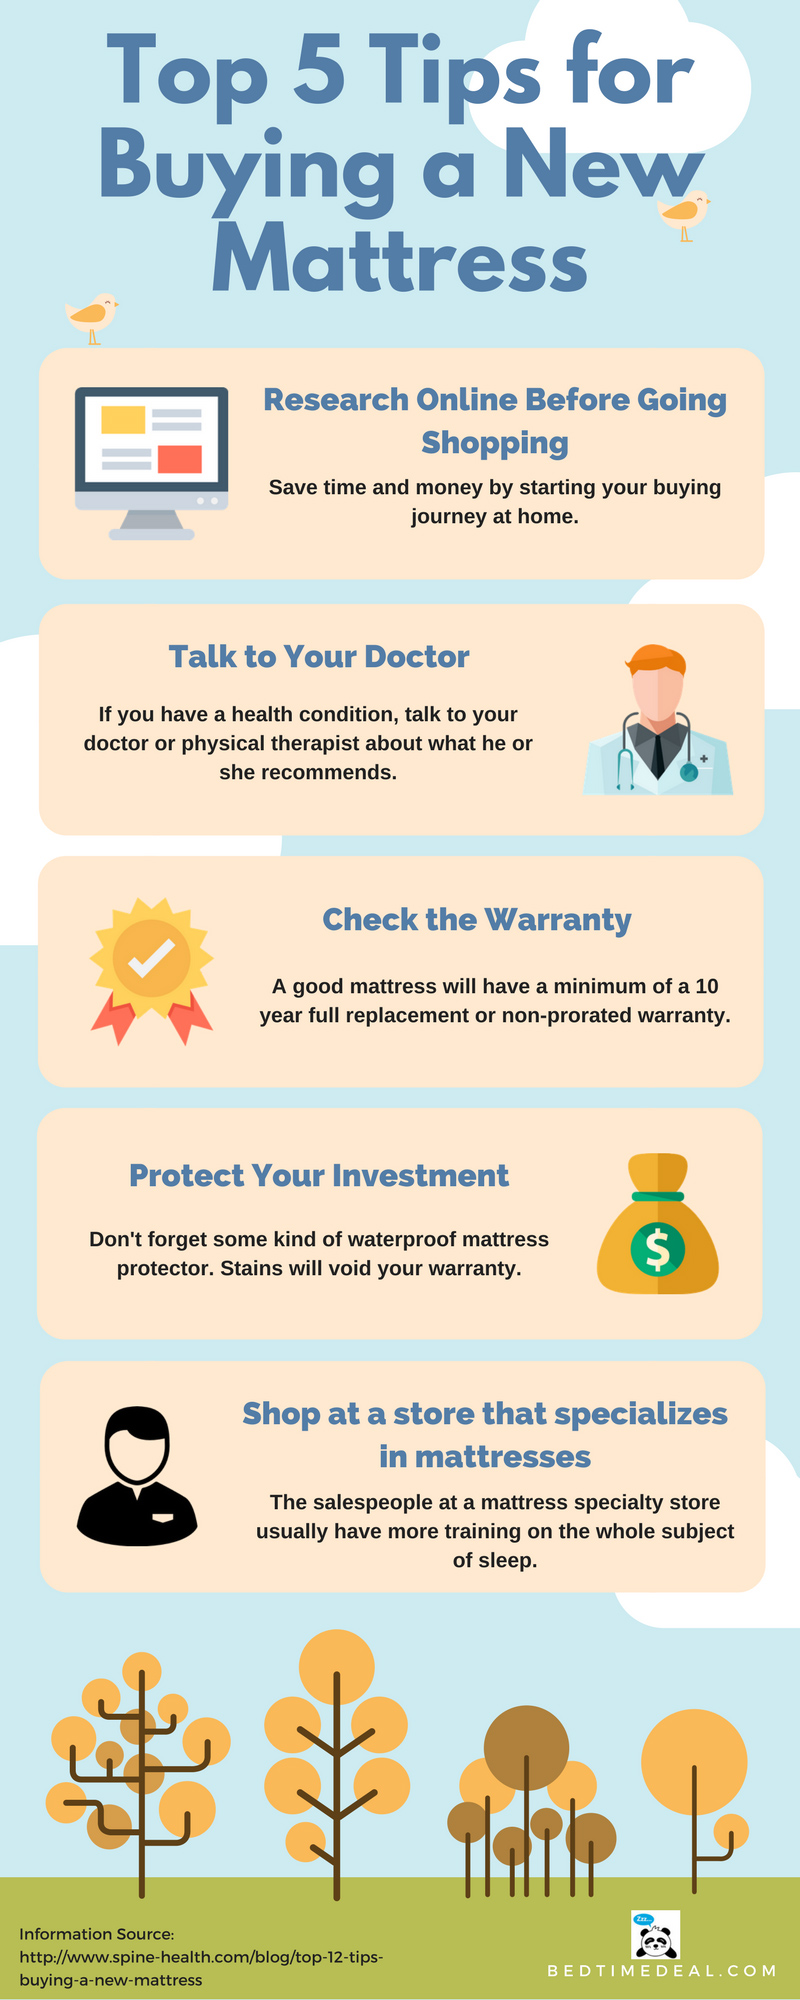 Top-5-Tips-for-Buying-a-New-Mattress